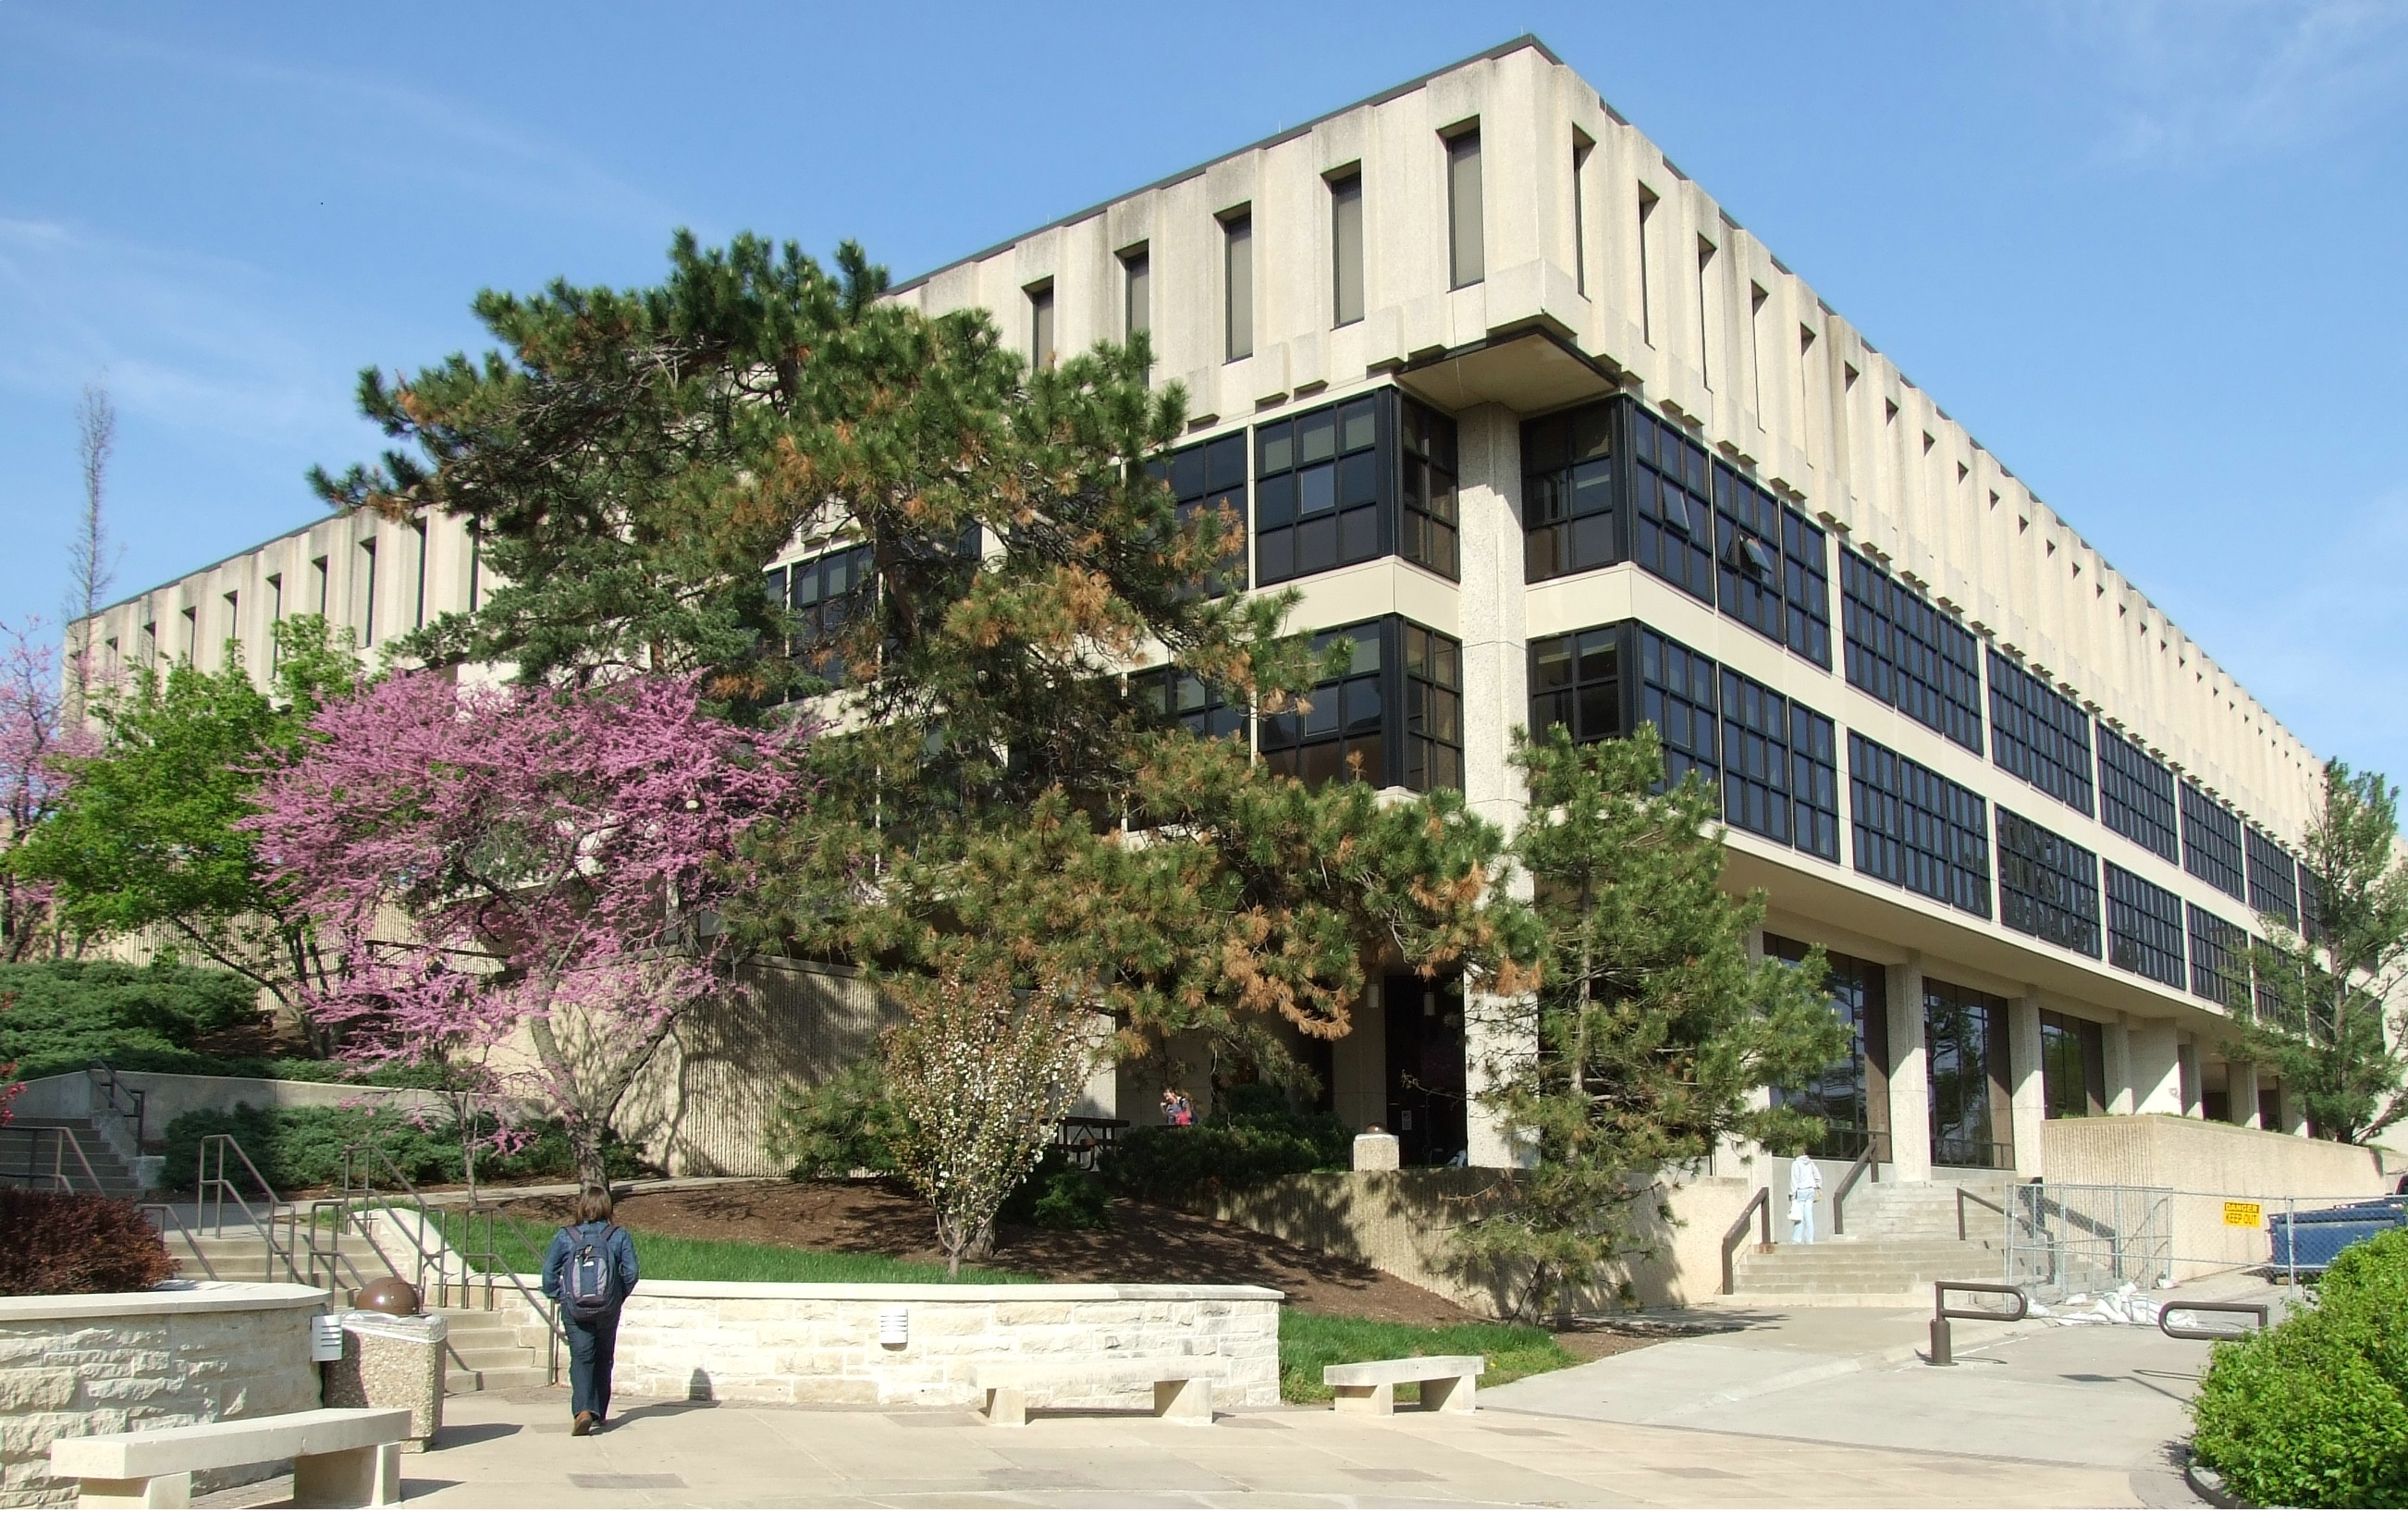 Wescoe Hall - home of the History Department